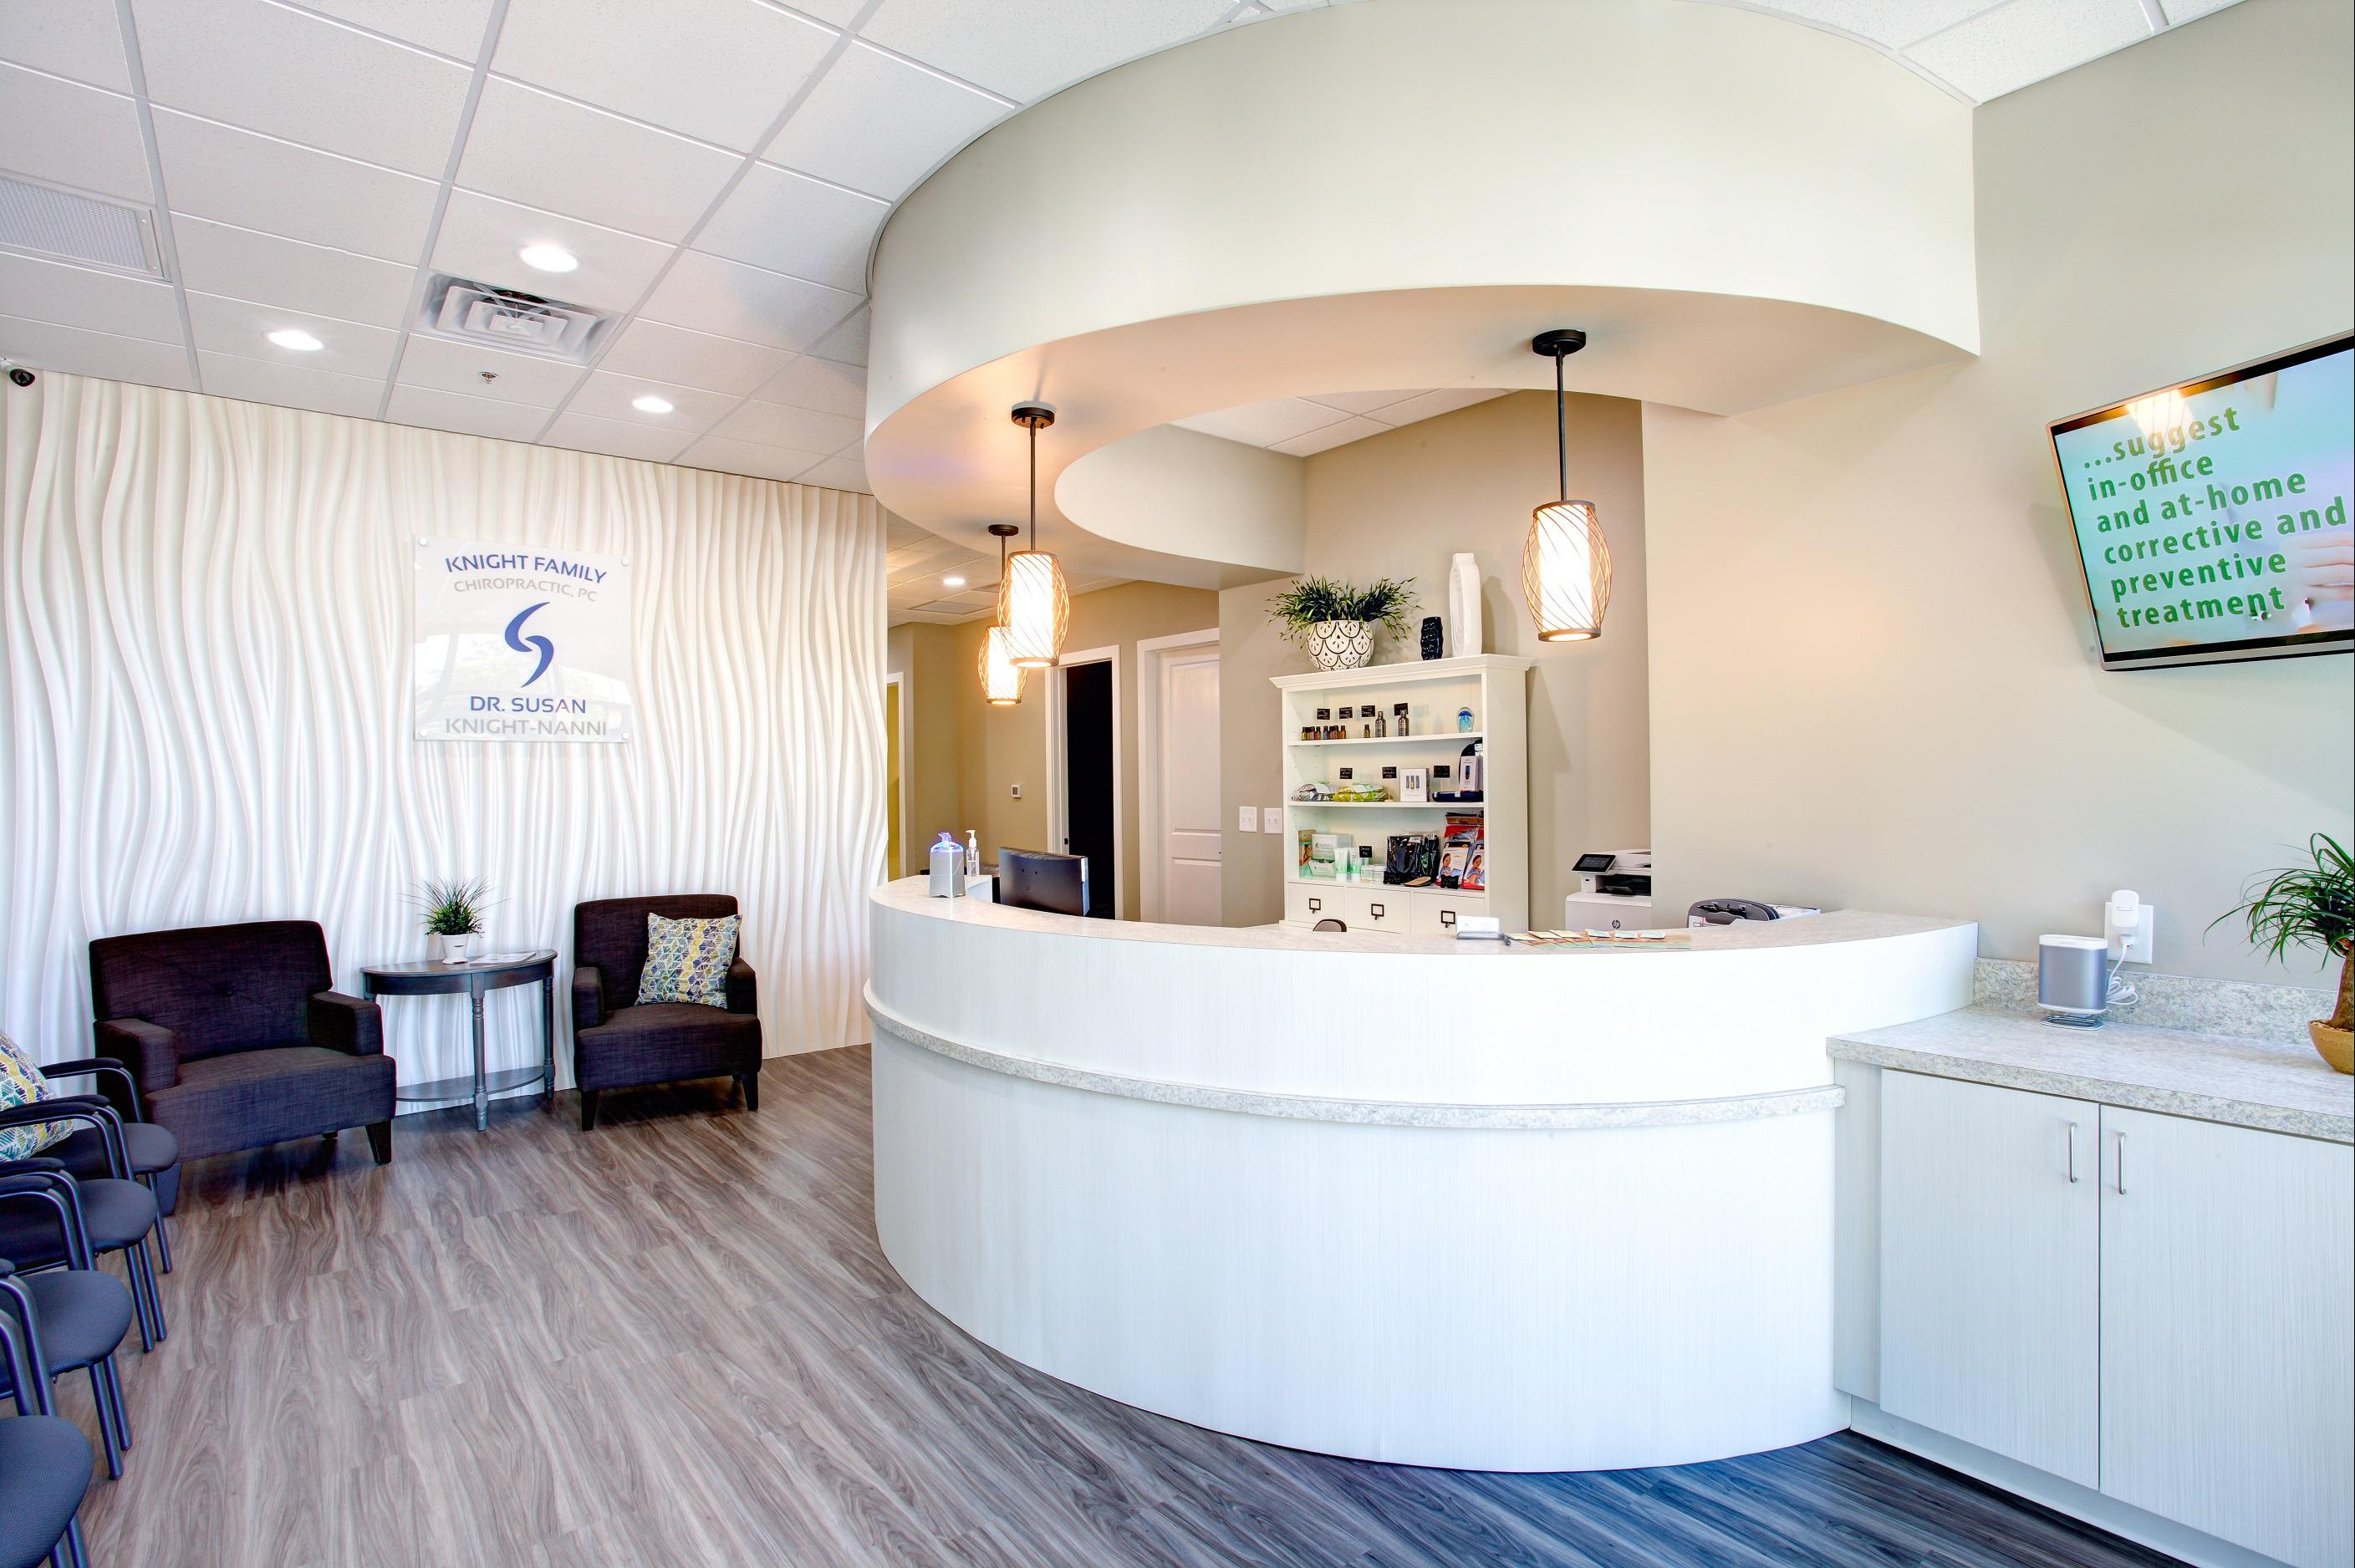 Knight Family Chiropractic, PC image 1